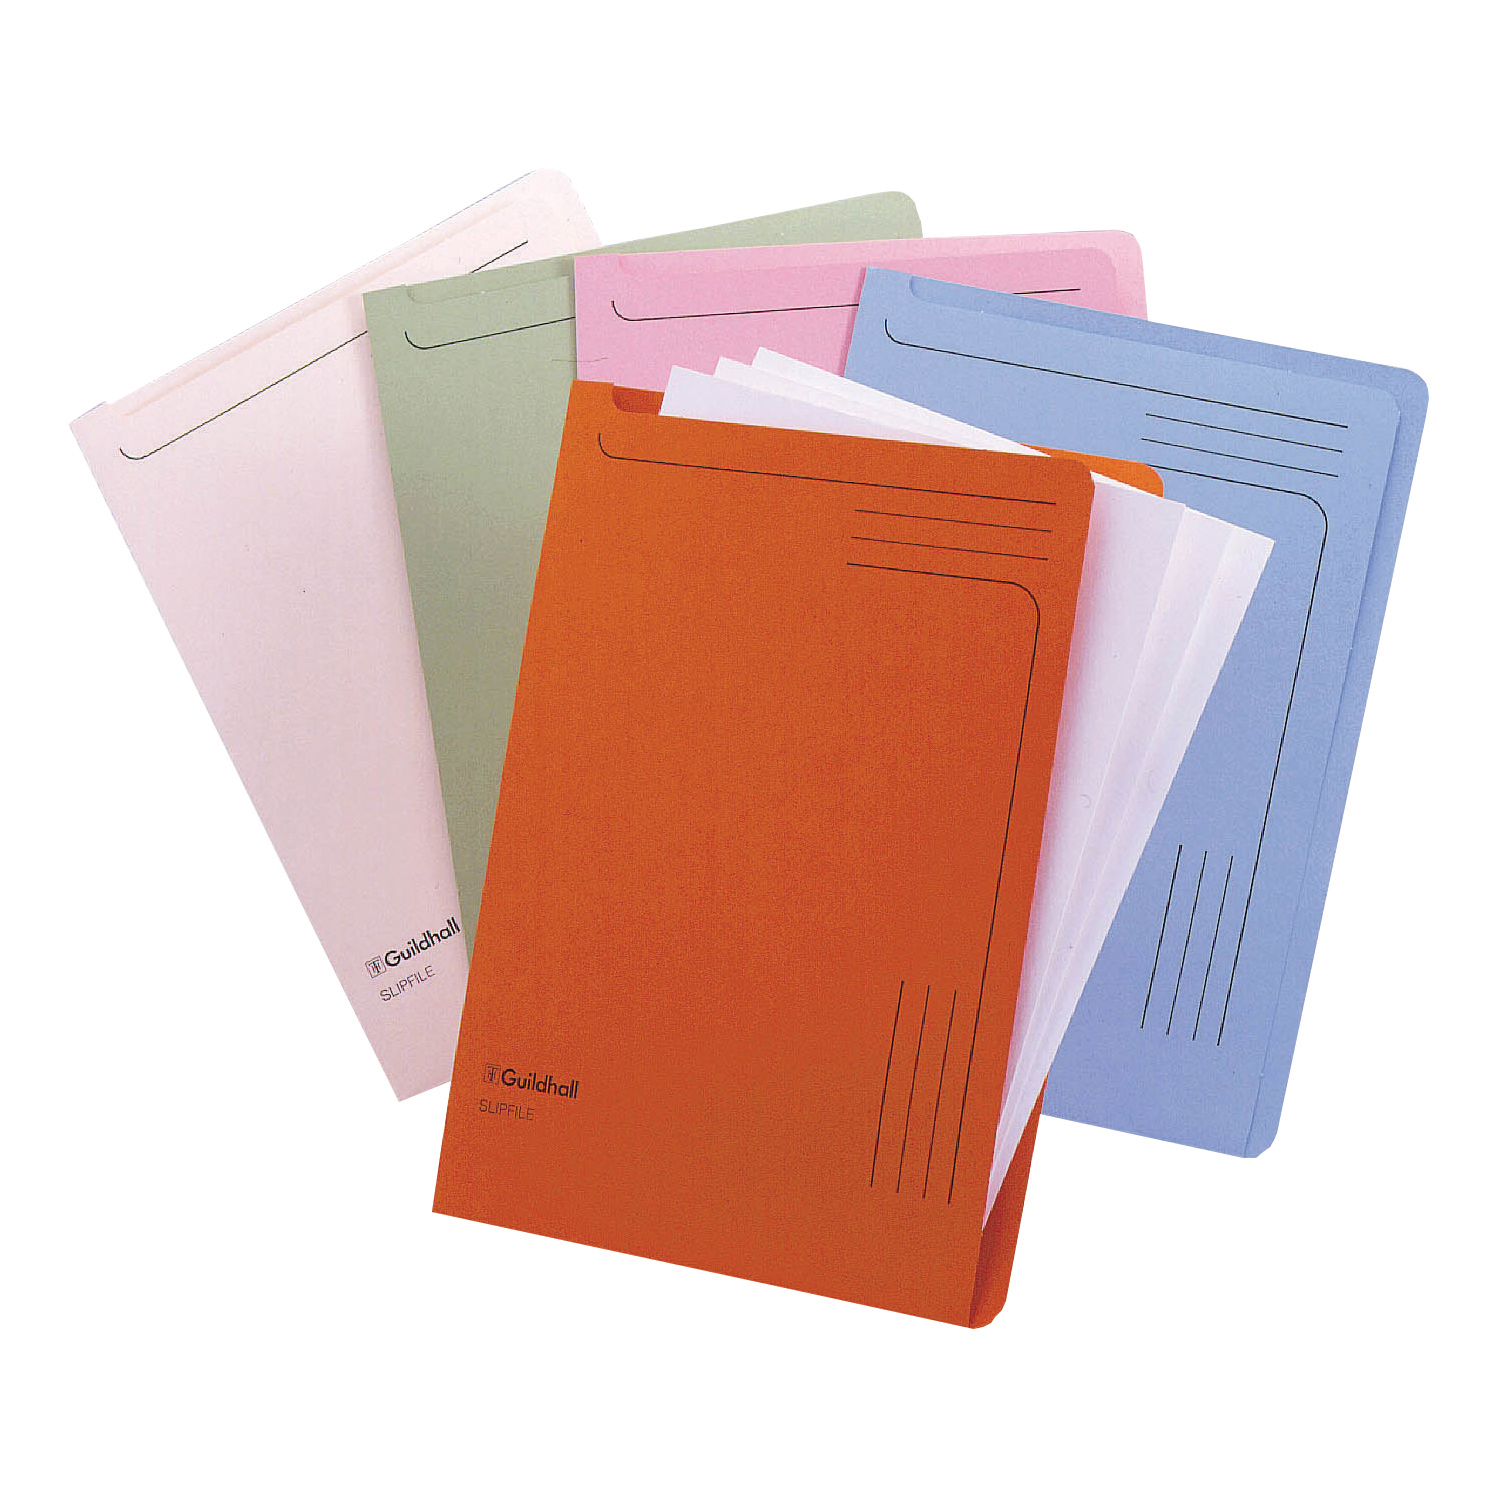 Guildhall Slip Files 230gm Assorted Blue/Pink/Cream/Green/Orange Ref 14600 [Pack 50]